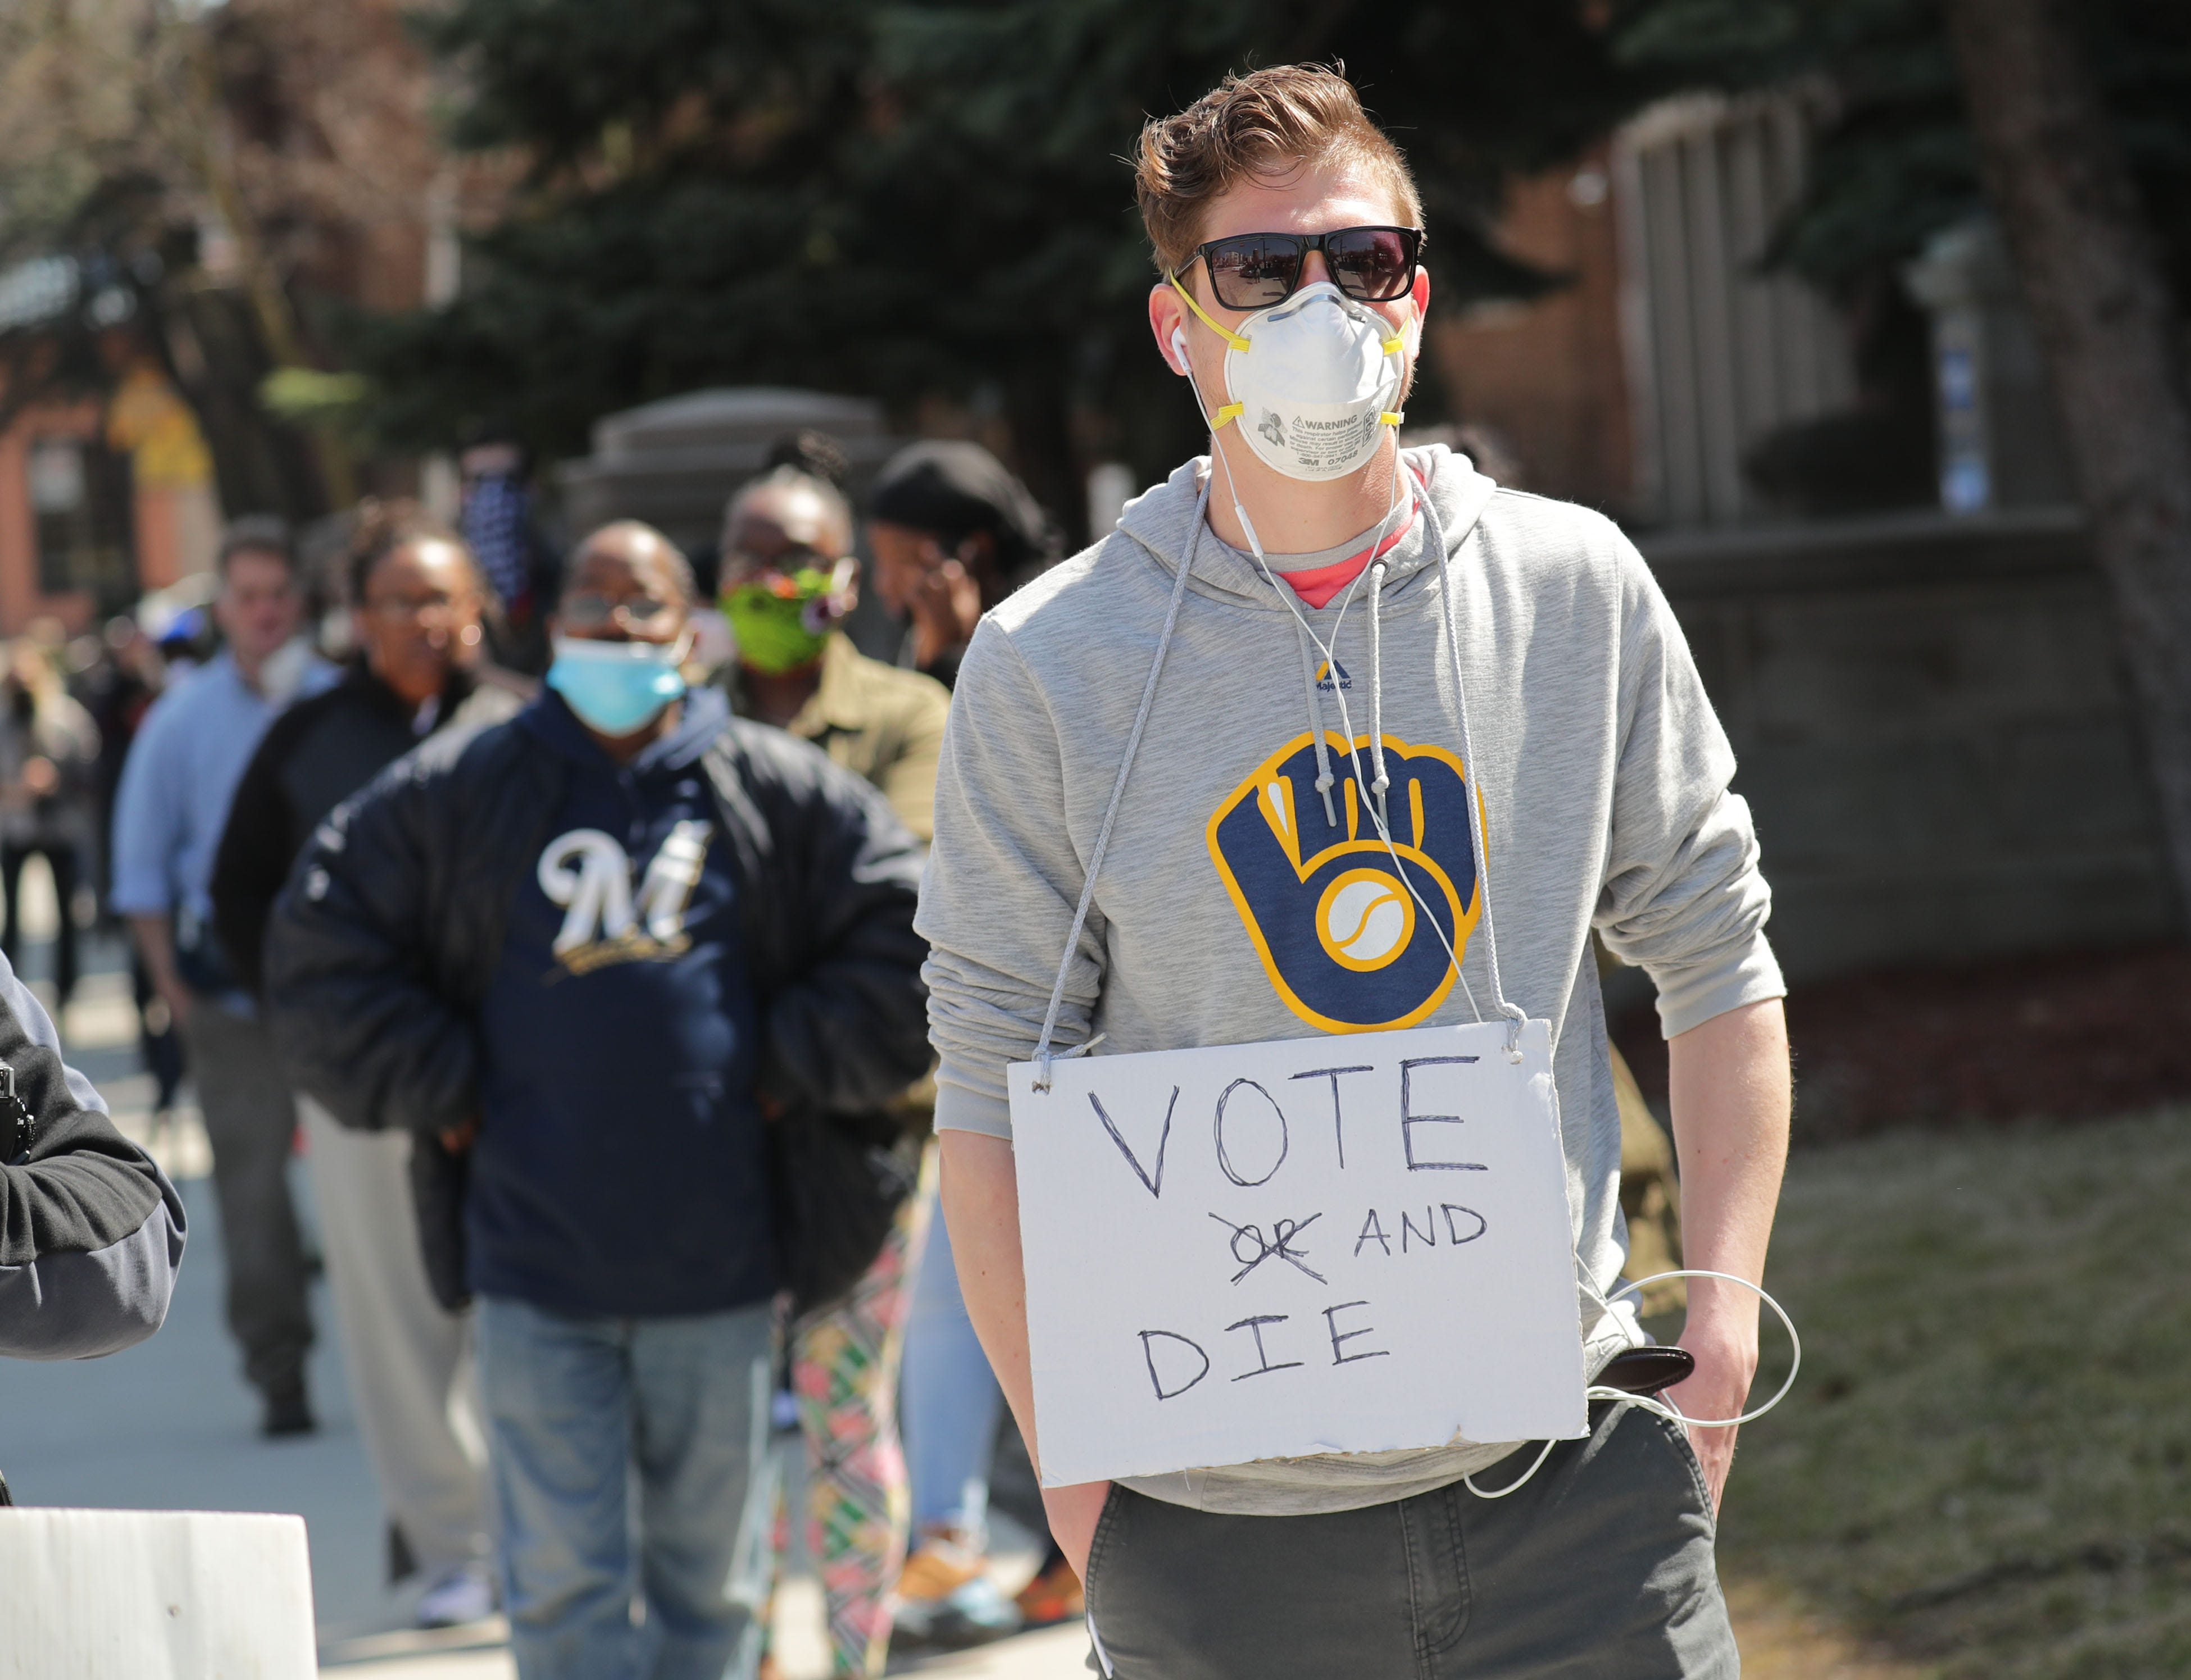 Torin Fendos, of Milwaukee, wears a sign voicing his view while waiting to vote at Riverside High School, 1615 E. Locust St. in Milwaukee on Tuesday, April 7, 2020. The Wisconsin primary is moving forward despite the coronavirus epidemic after Gov. Tony Evers sought to shut down Tuesday's election in a historic move Monday that was swiftly rejected by the conservative majority of the Wisconsin Supreme Court.